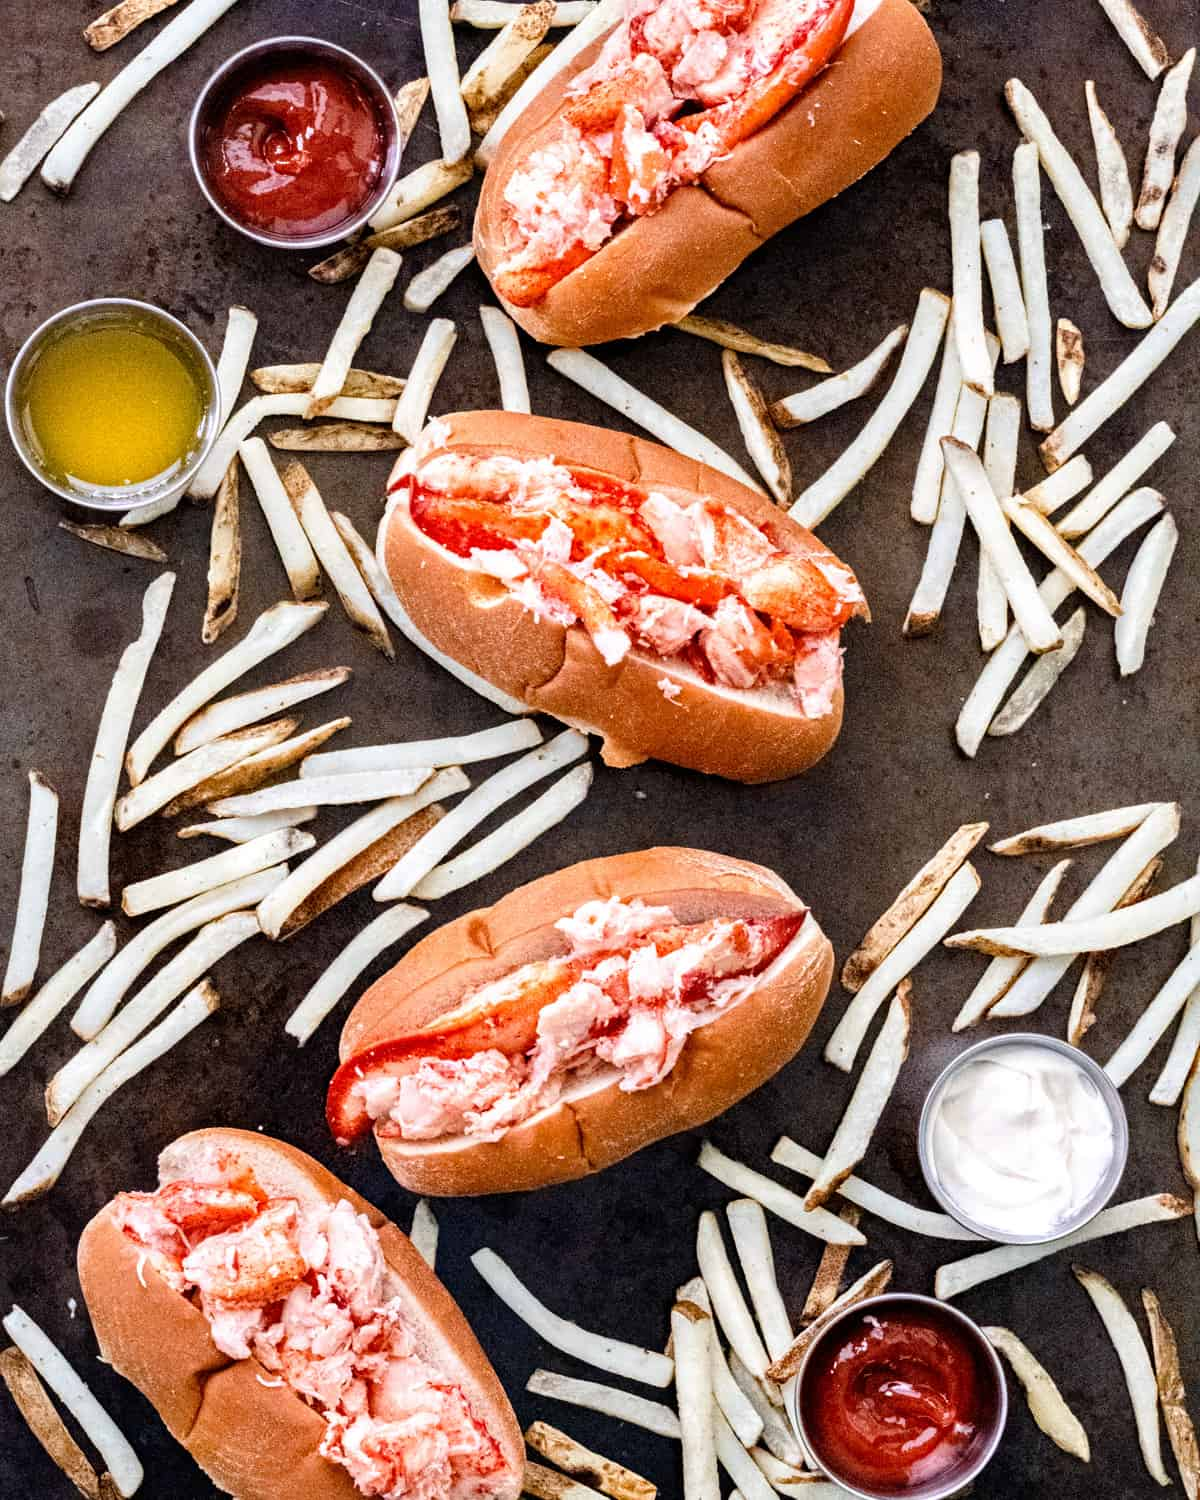 4 lobster rolls on a sheet pan with fries and condiment ramekans.